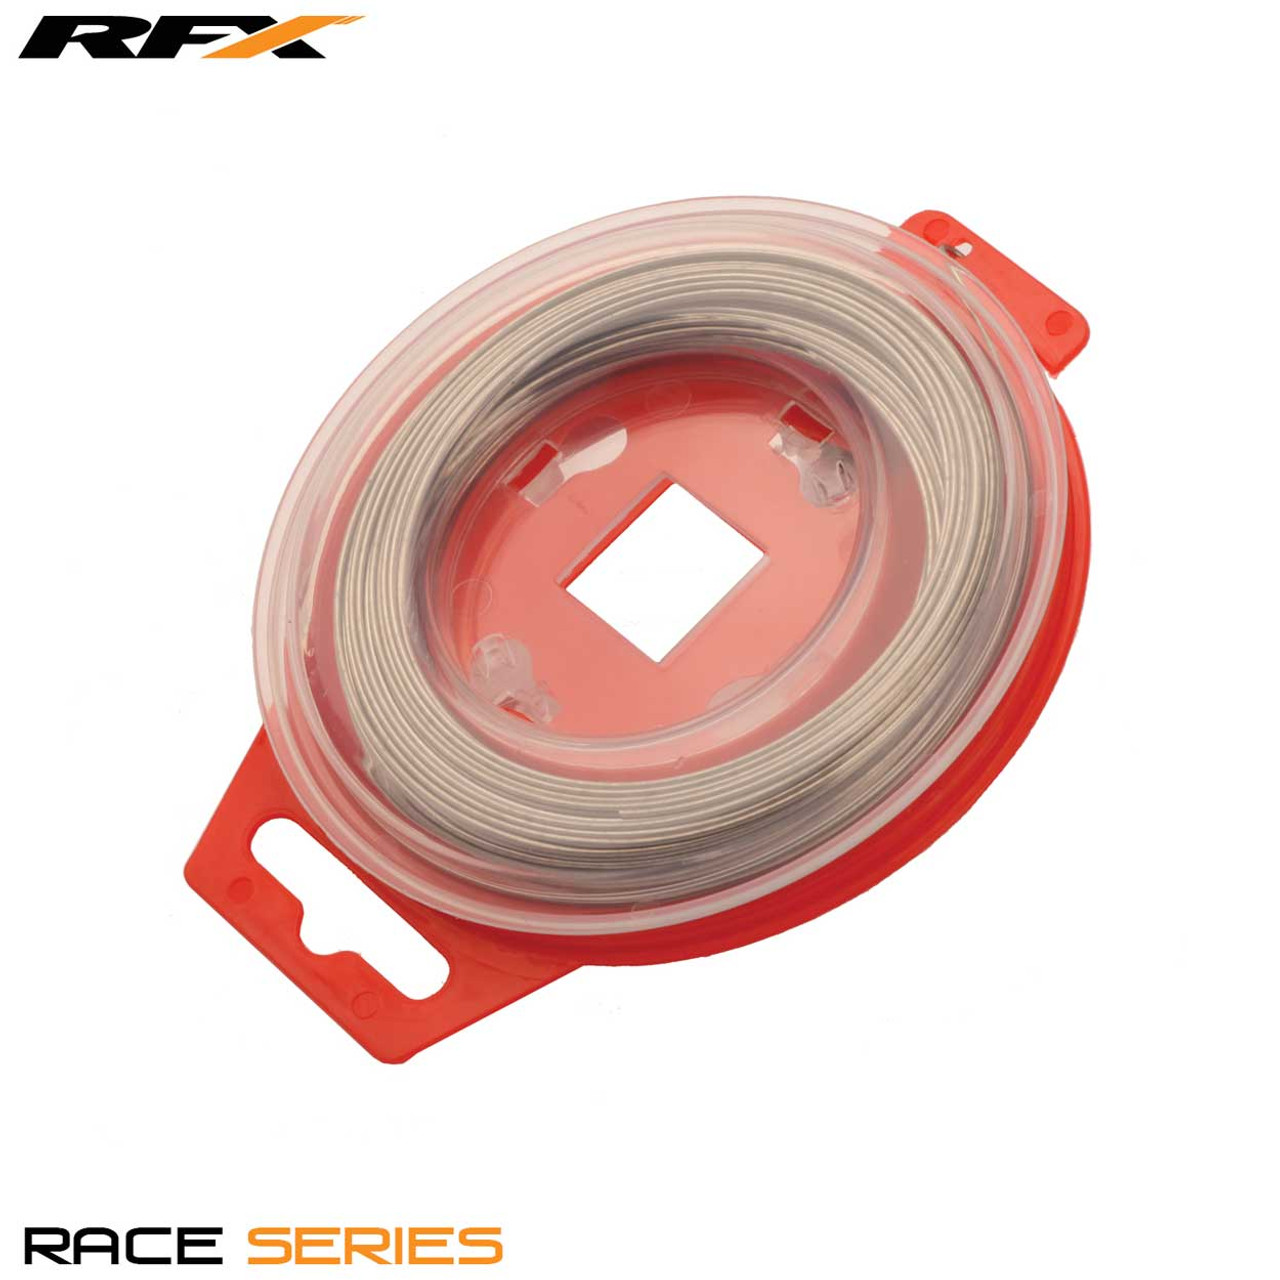 GRIP WIRE safety wire  racing